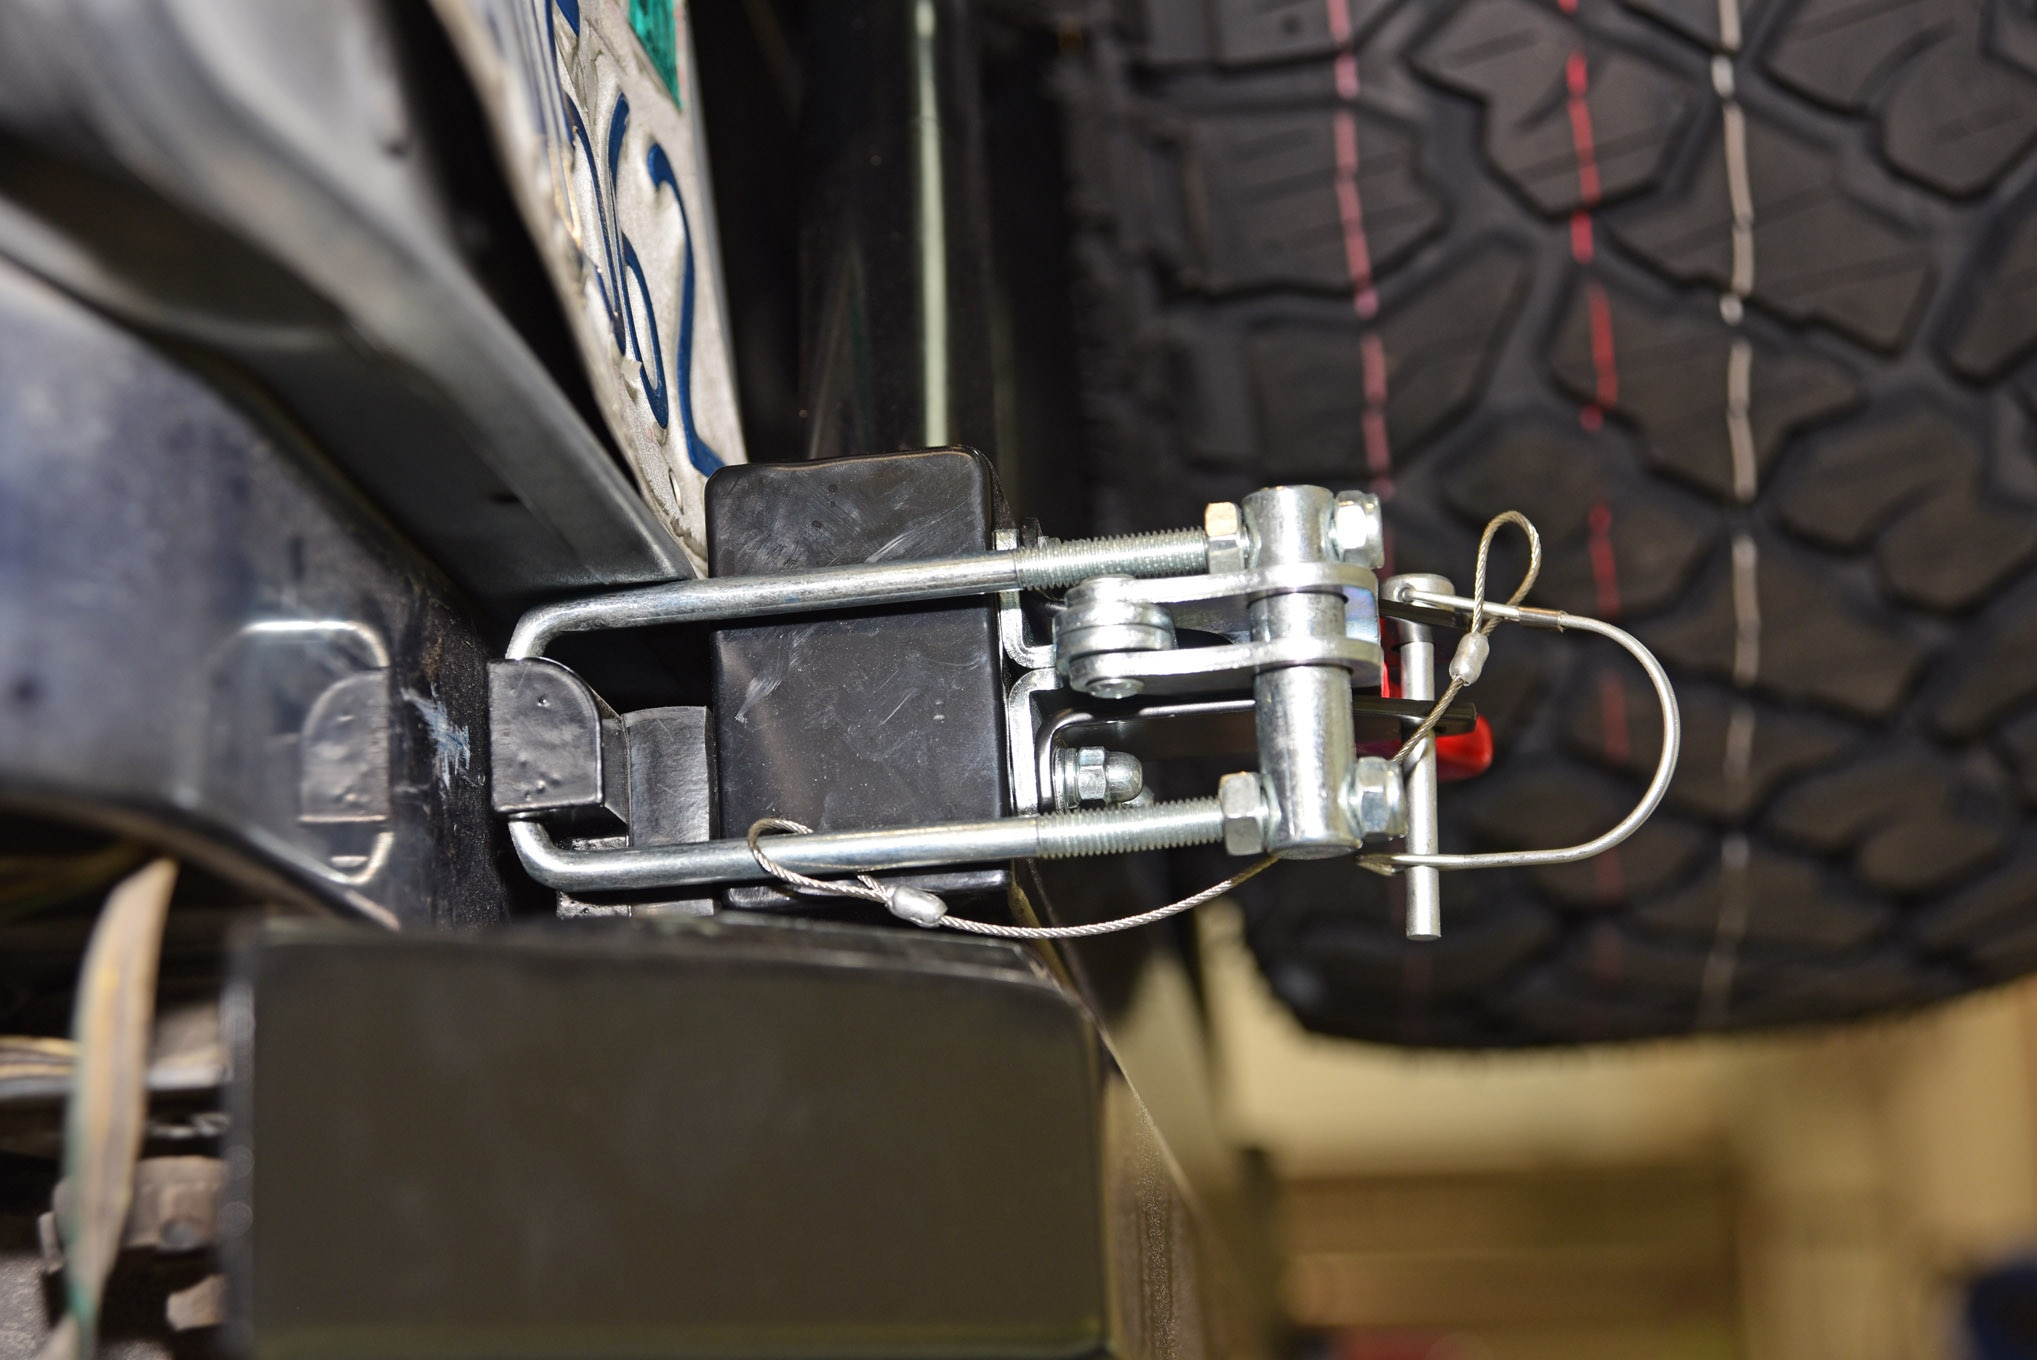 A kit-supplied latch had been assembled and installed (including the rubber stop block on the bumper) onto the swing-out carrier. When properly installed and adjusted, the latch assembly will tightly hold the tire carrier closed to the rear Rampage Recovery bumper.